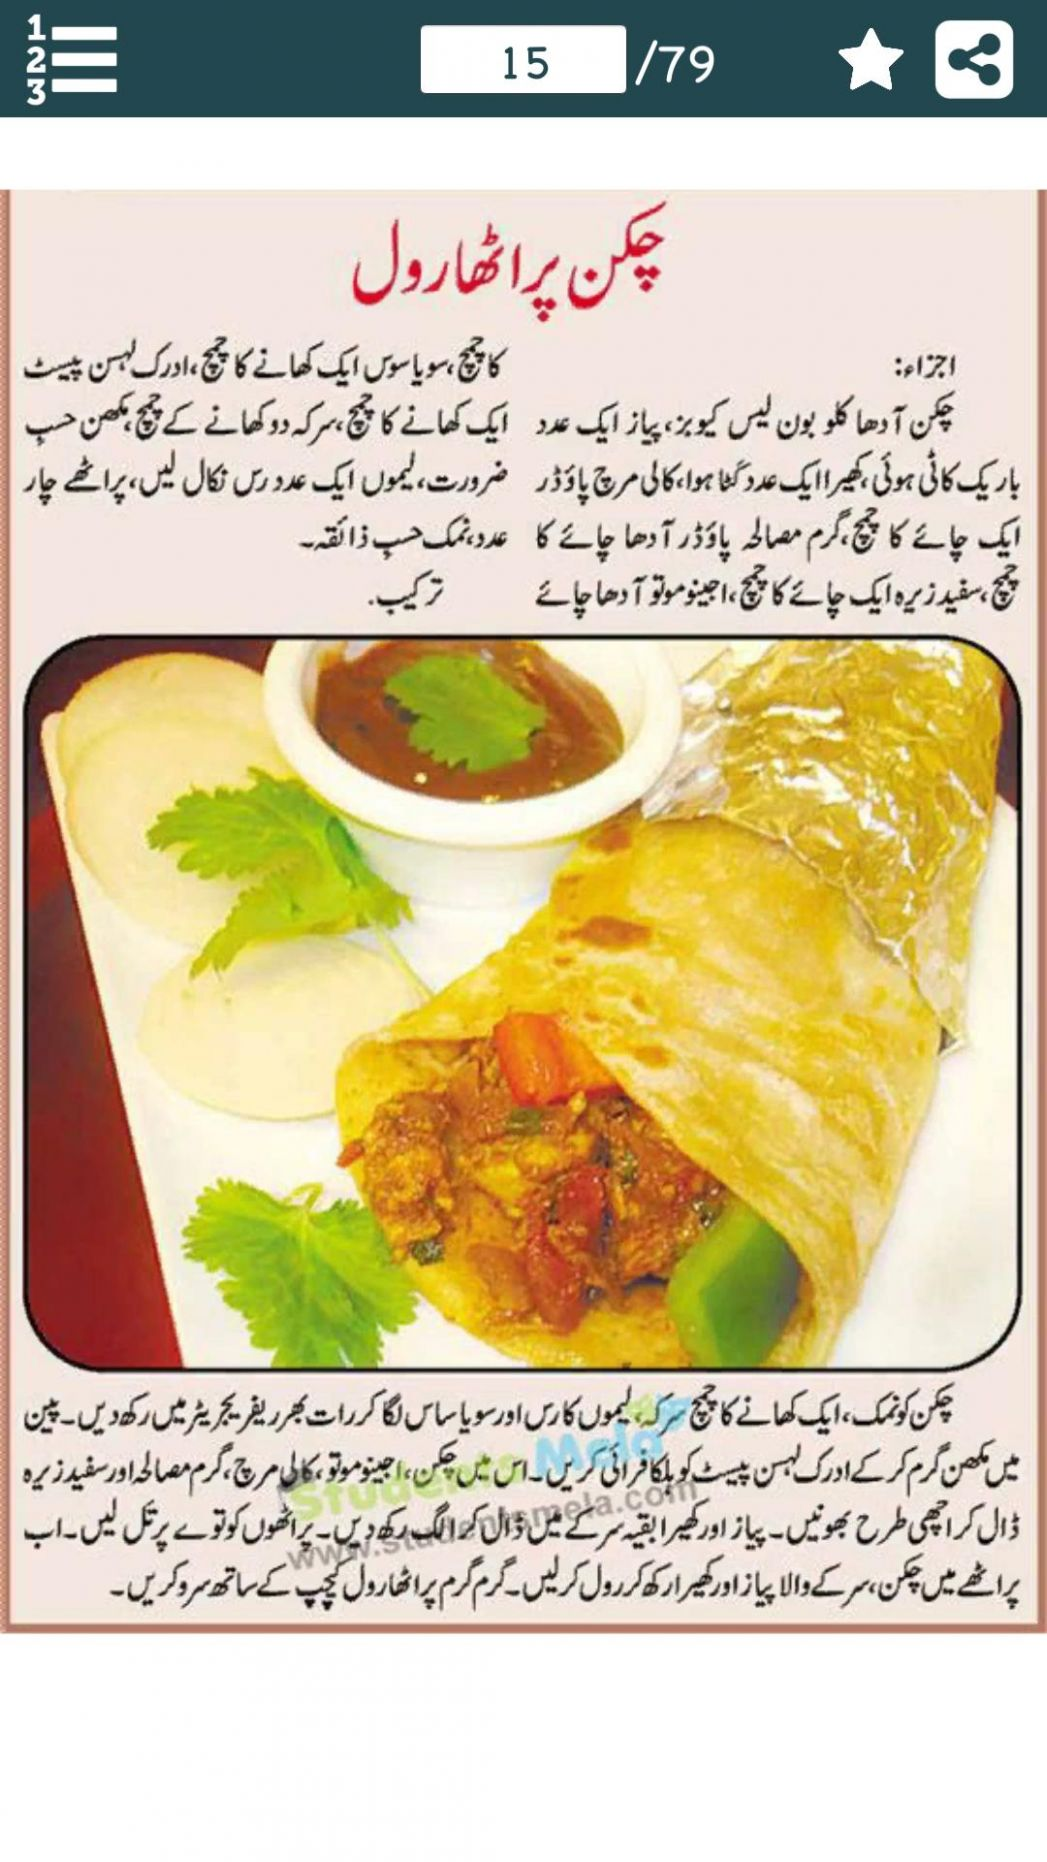 Pakistani Easy Recipes in URDU for Android - APK Download - Simple Recipes Pakistani